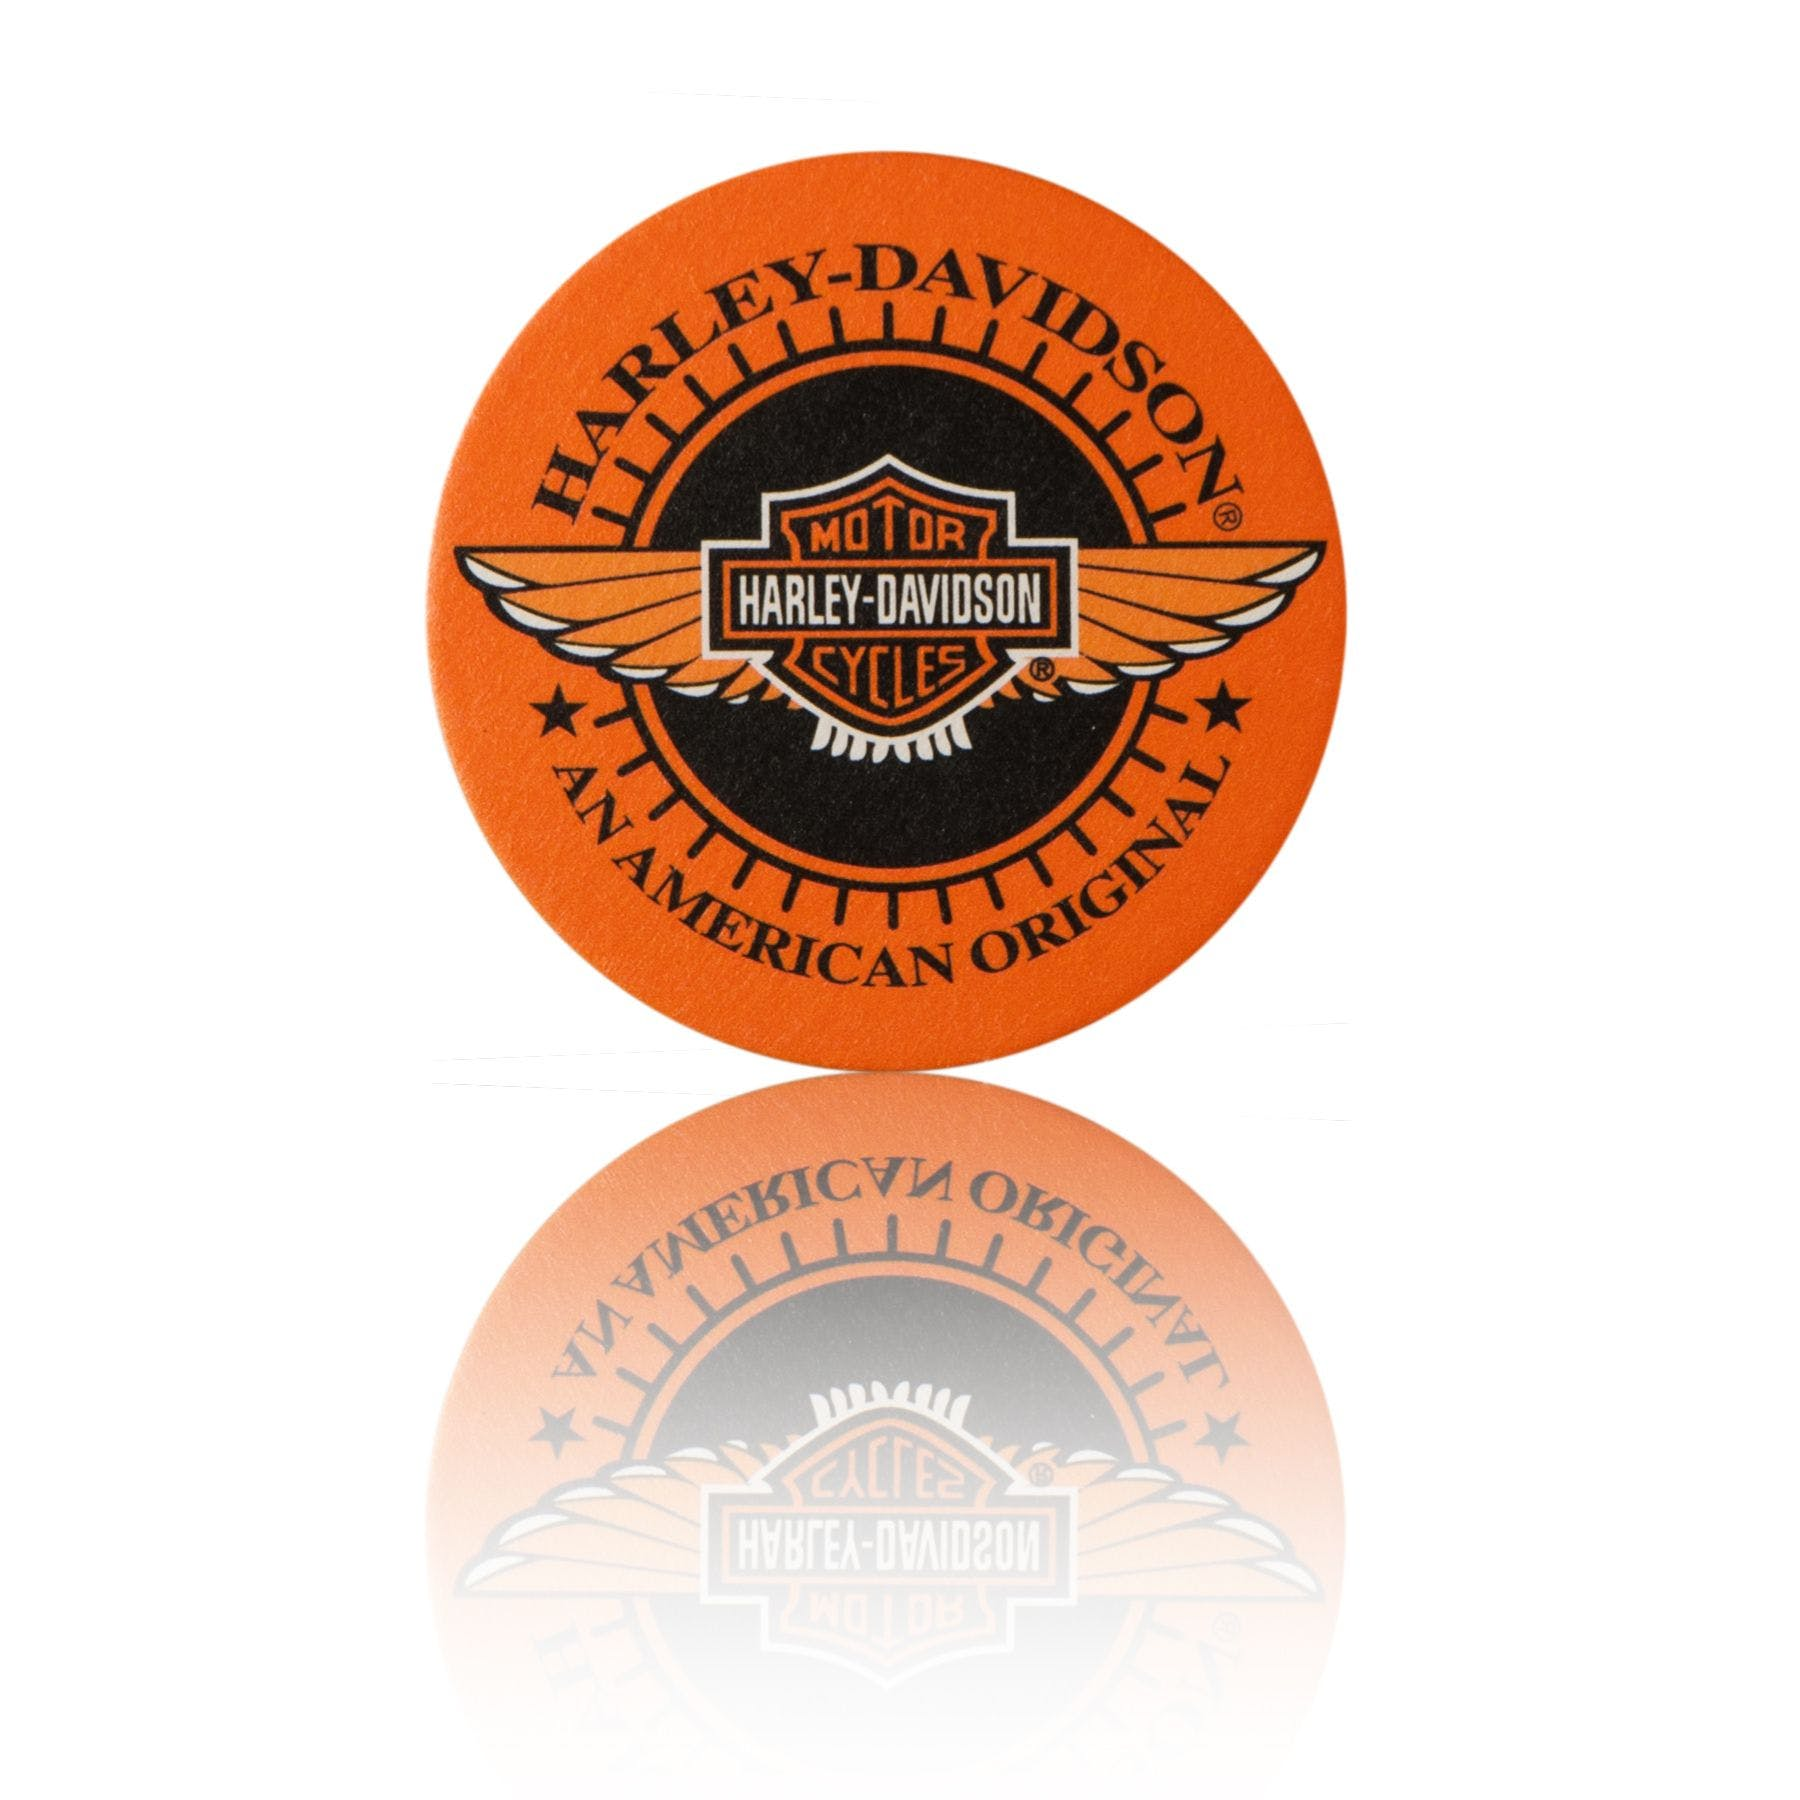 "60 PT 3.5"" Round Coaster Drink coaster sold by Ink Splash Promos, LLC"